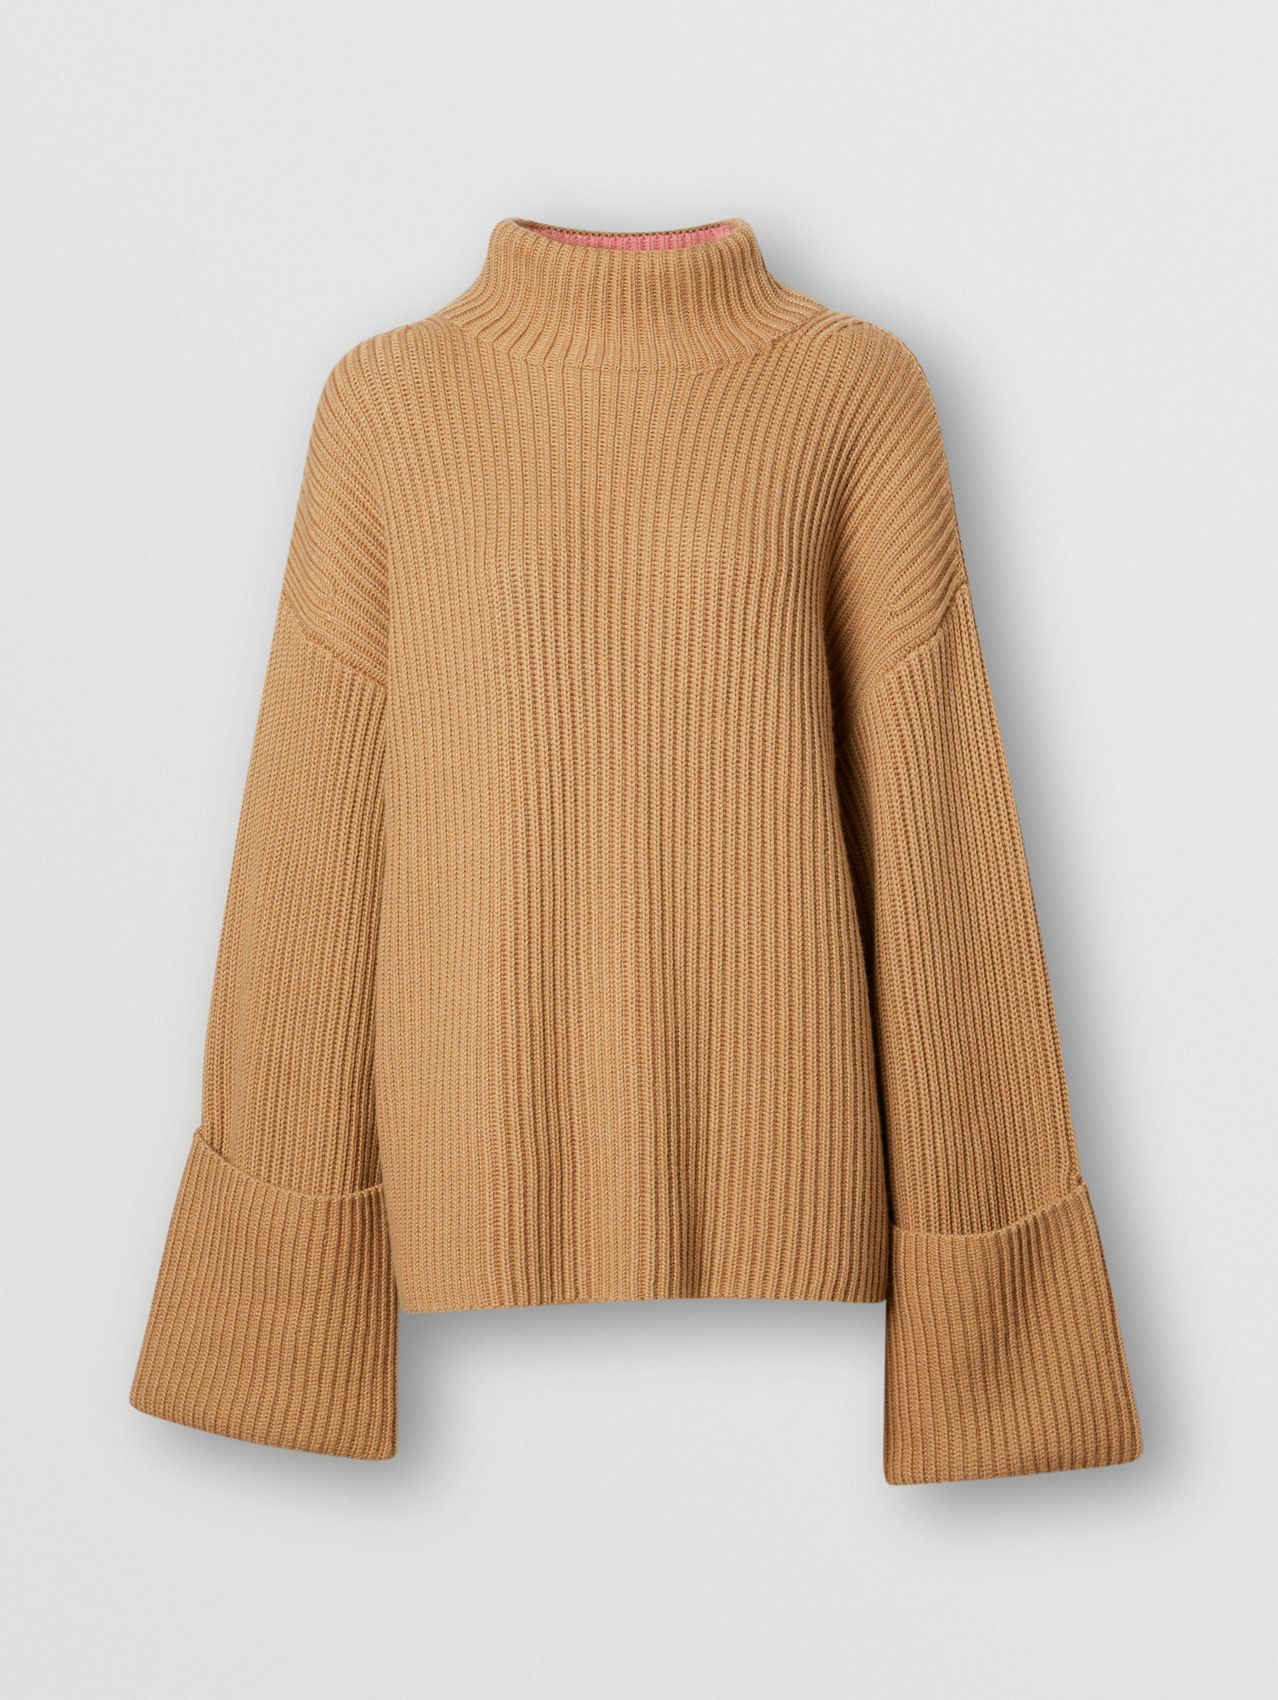 Rib Knit Cotton Cashmere Oversized Sweater in Camel